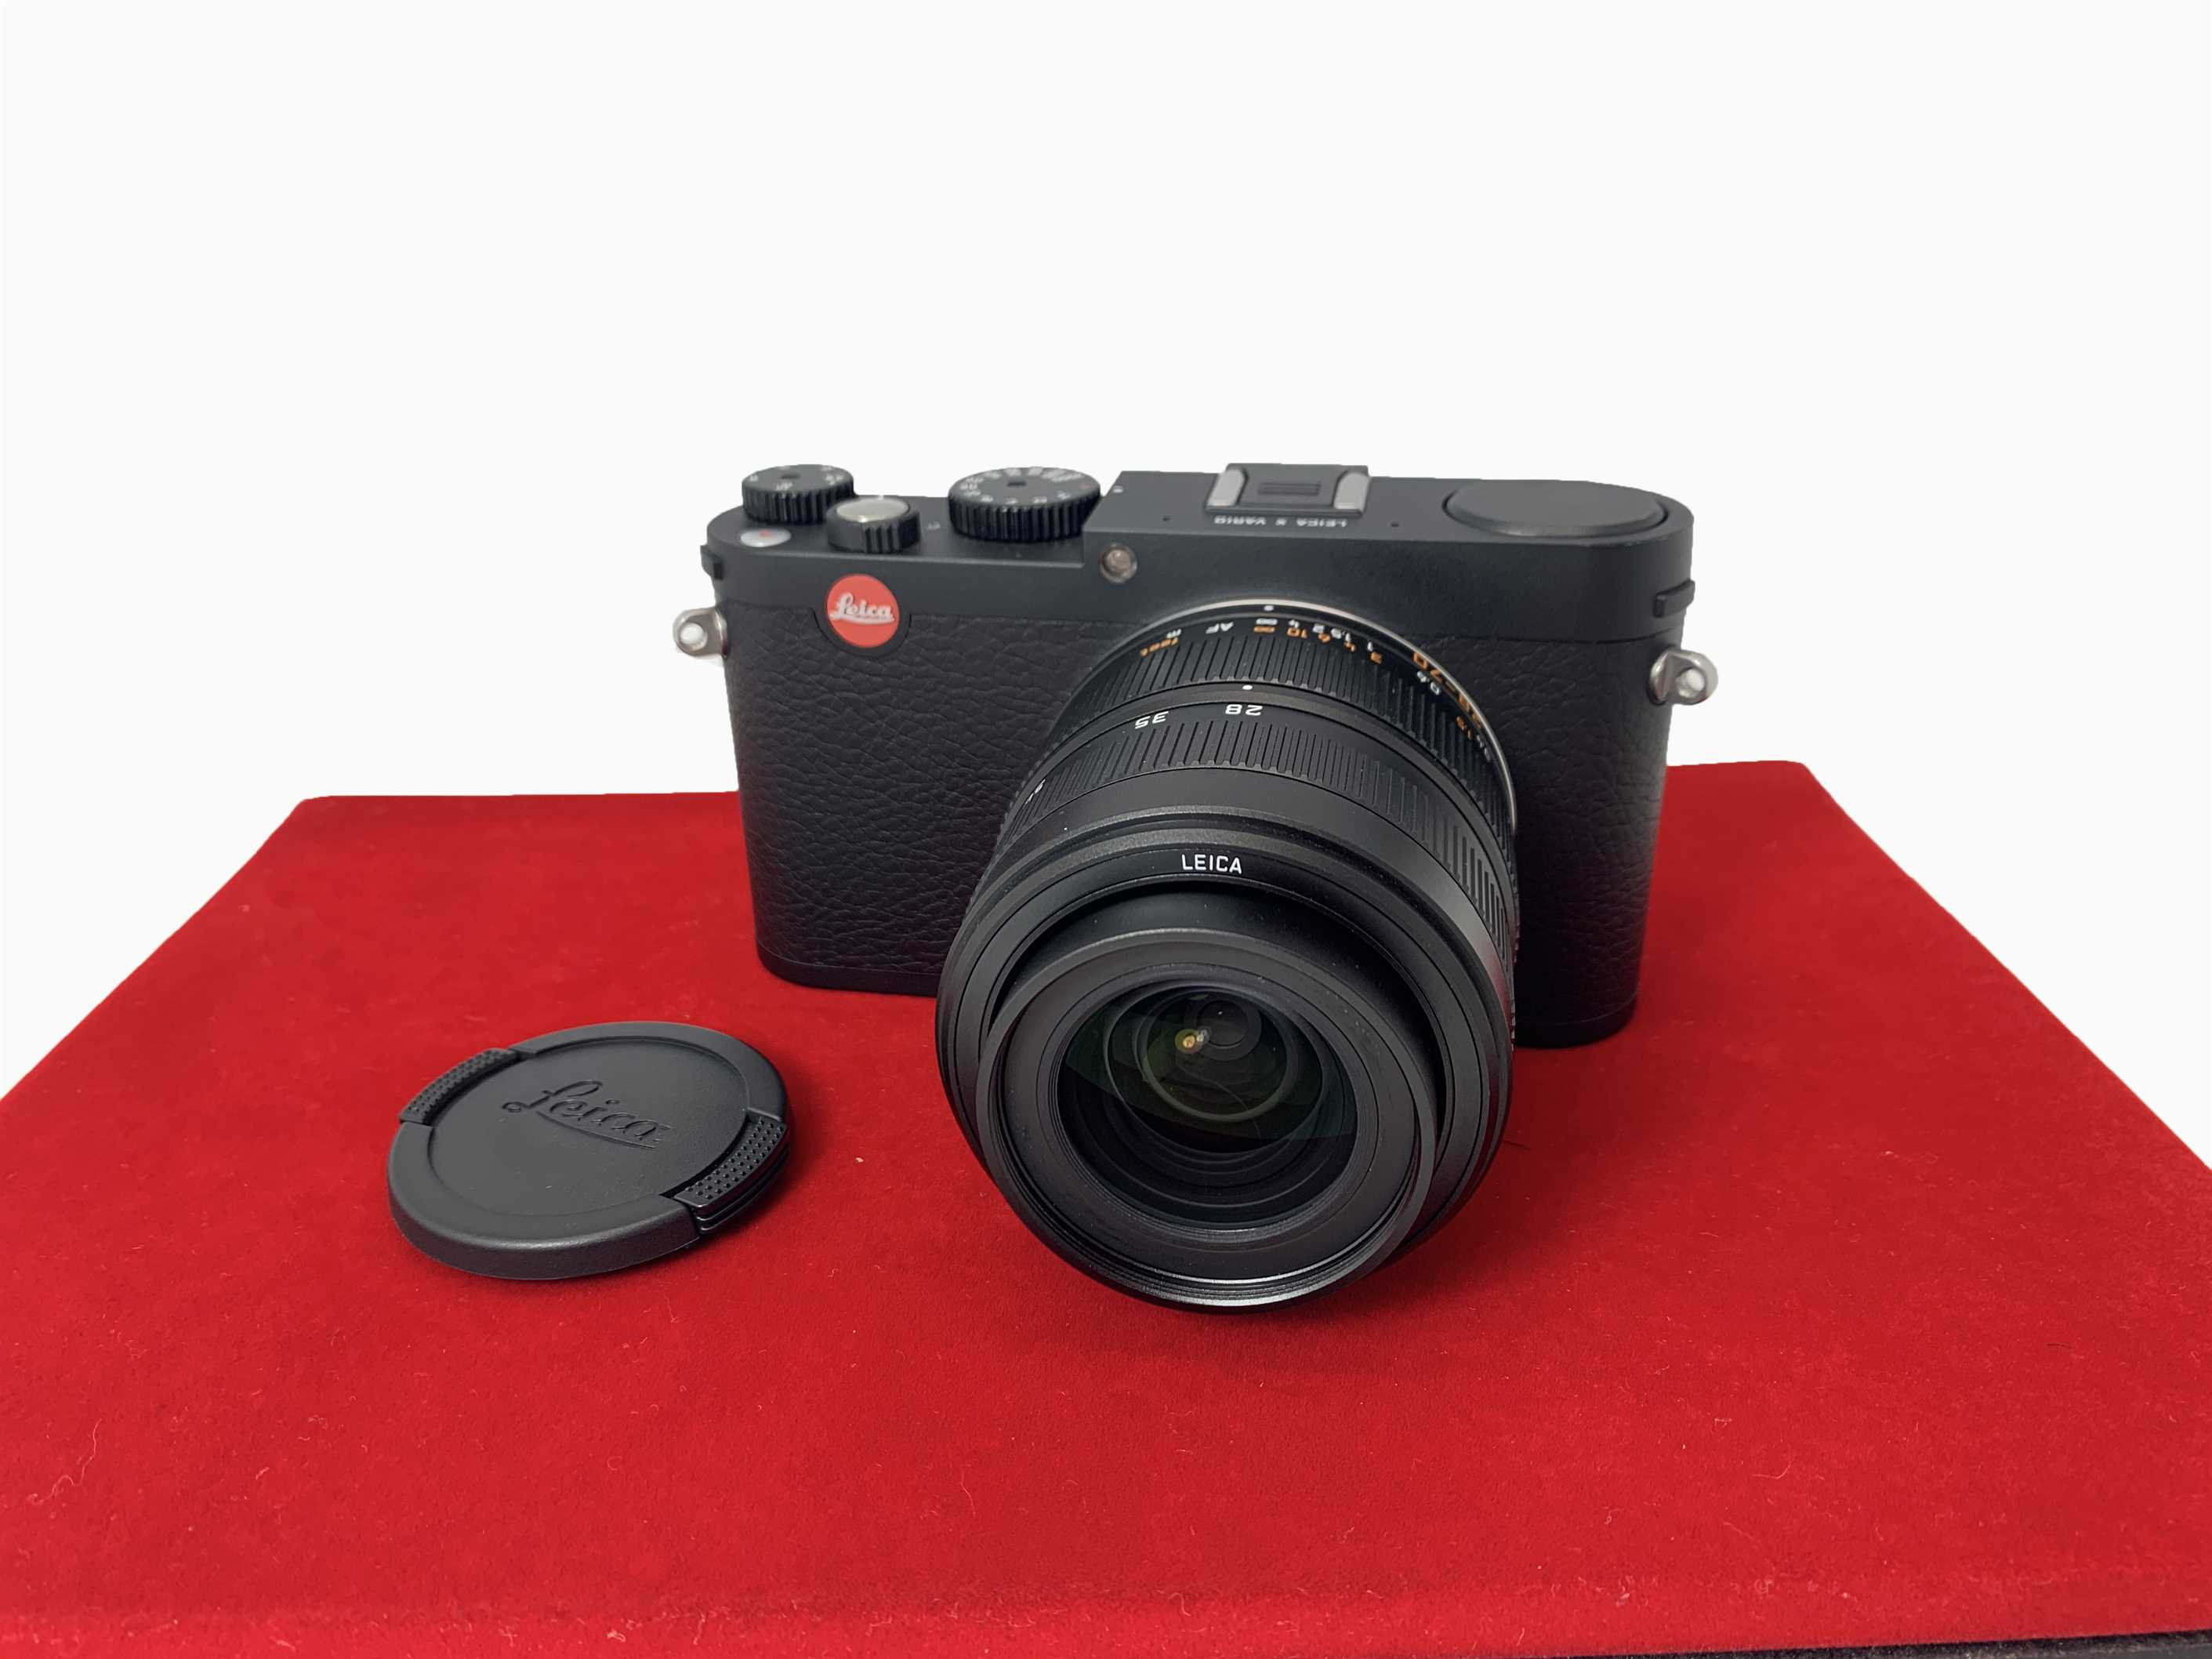 [USED-PJ33] Leica X Vario Camera [TYP 107],95% Like New Condition (S/N:4794863)